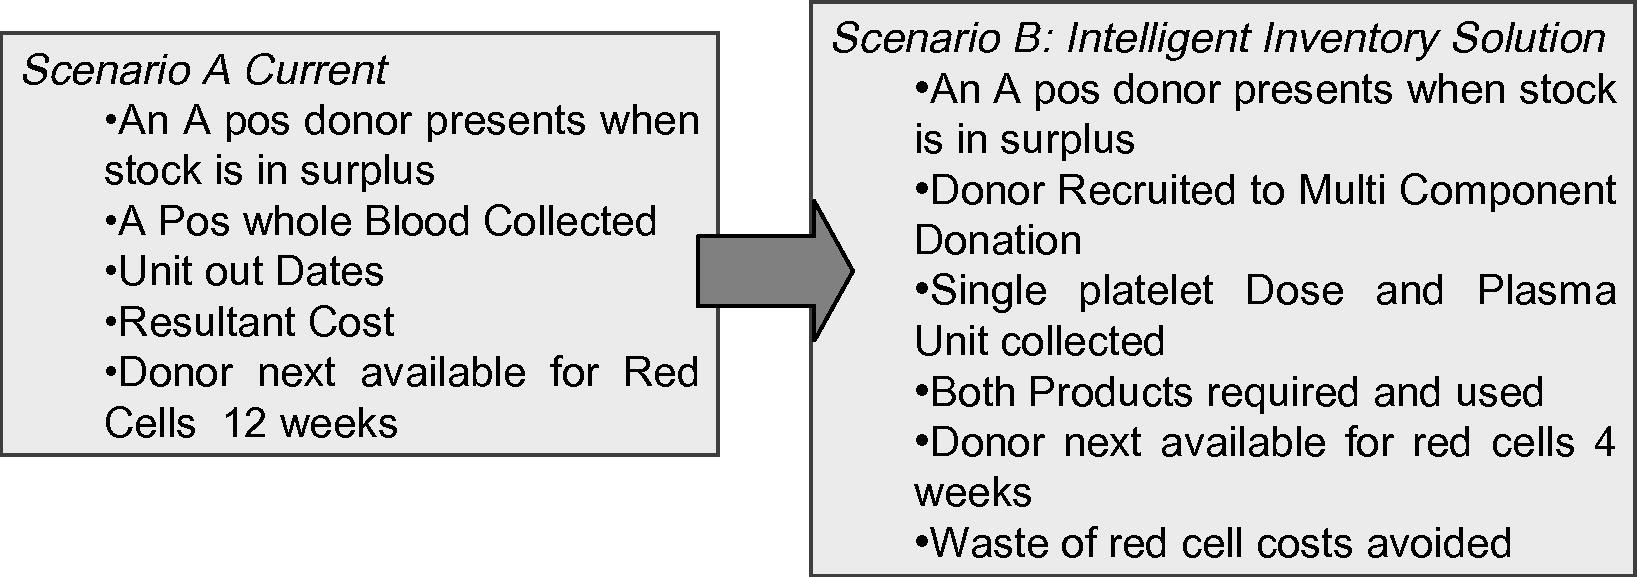 Balanced scorecard case study - canadian blood services